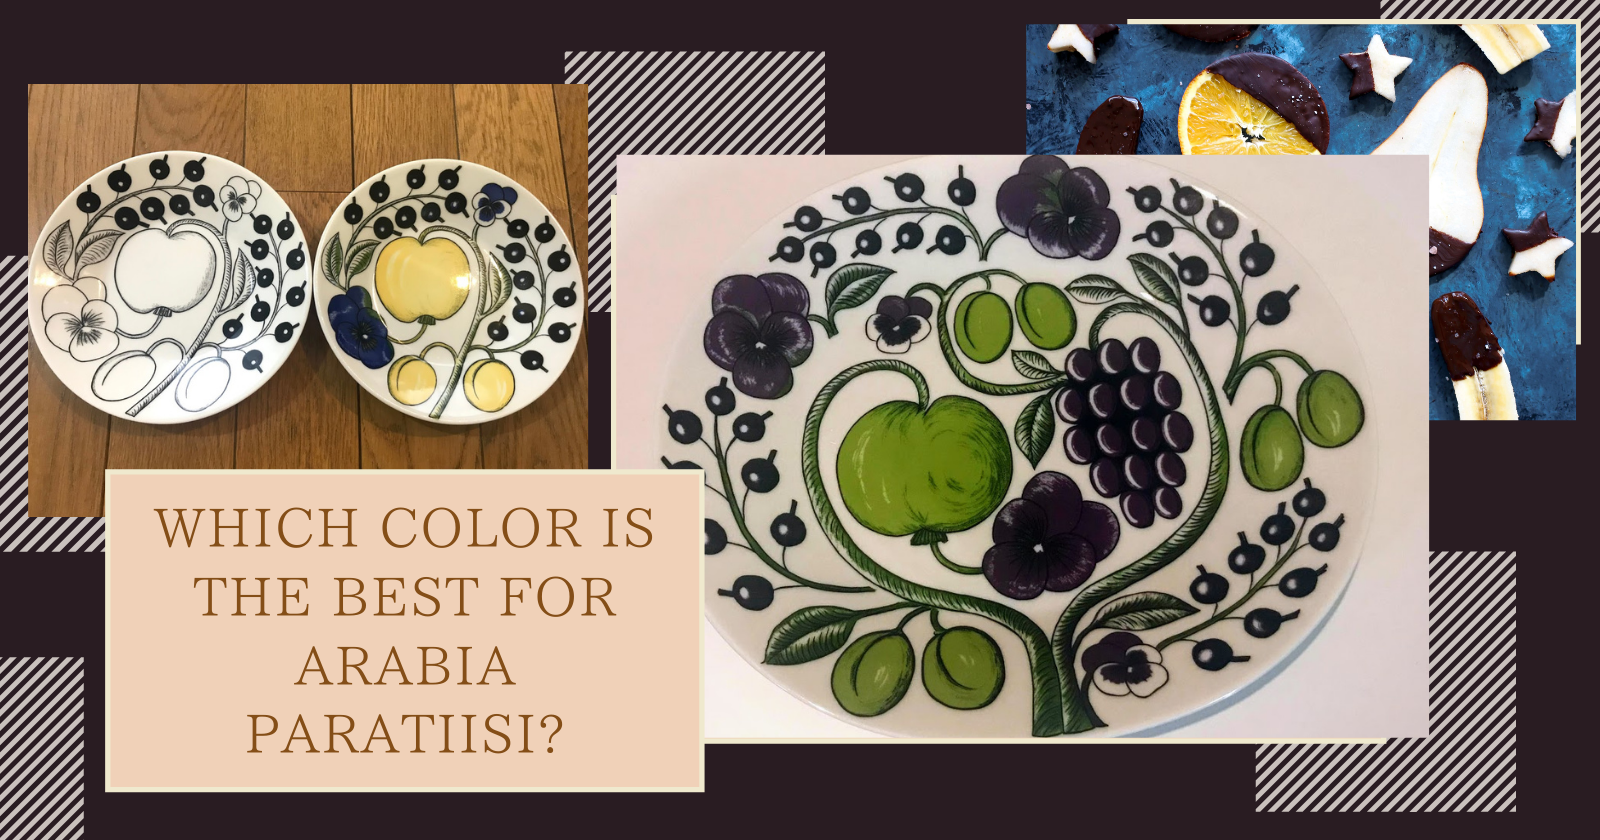 which color is the best for Arabia PARATIISI